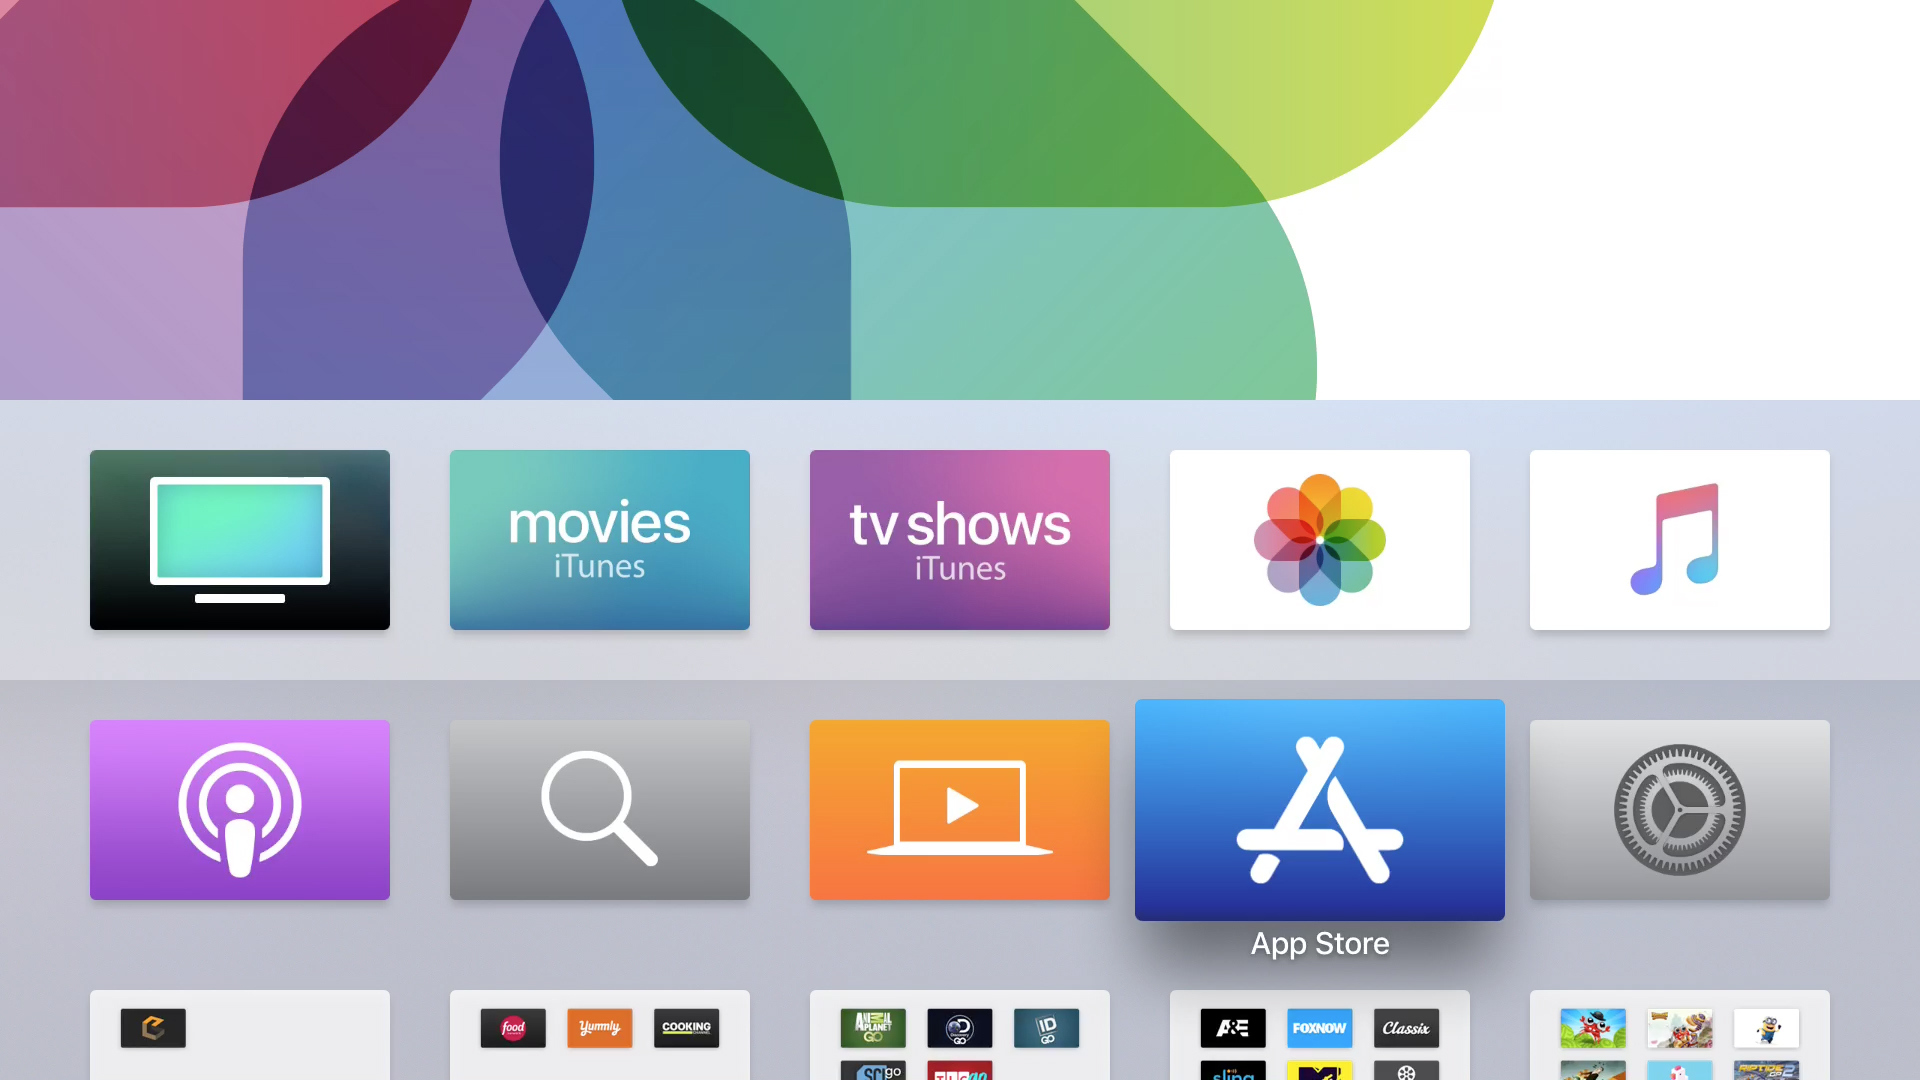 Apple TV main screen